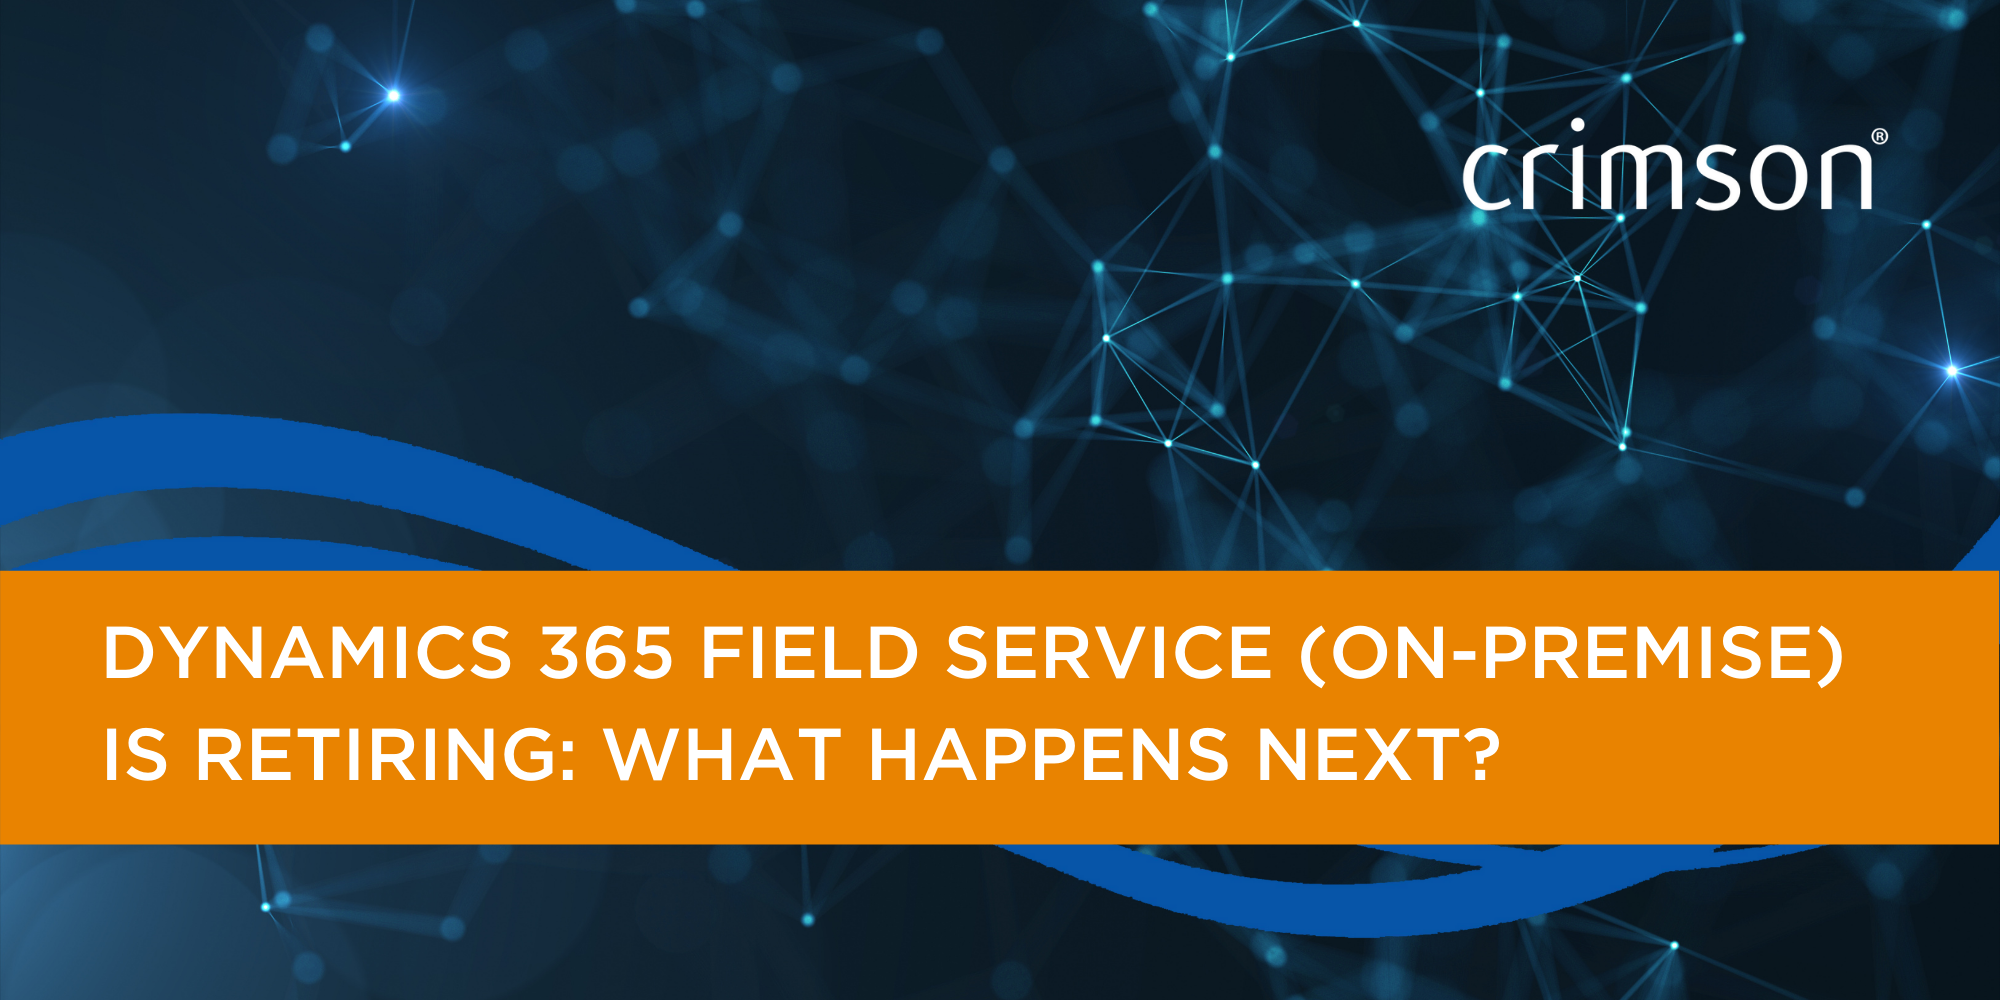 Dynamics 365 Field Service (on-premise) is retiring: What happens next?